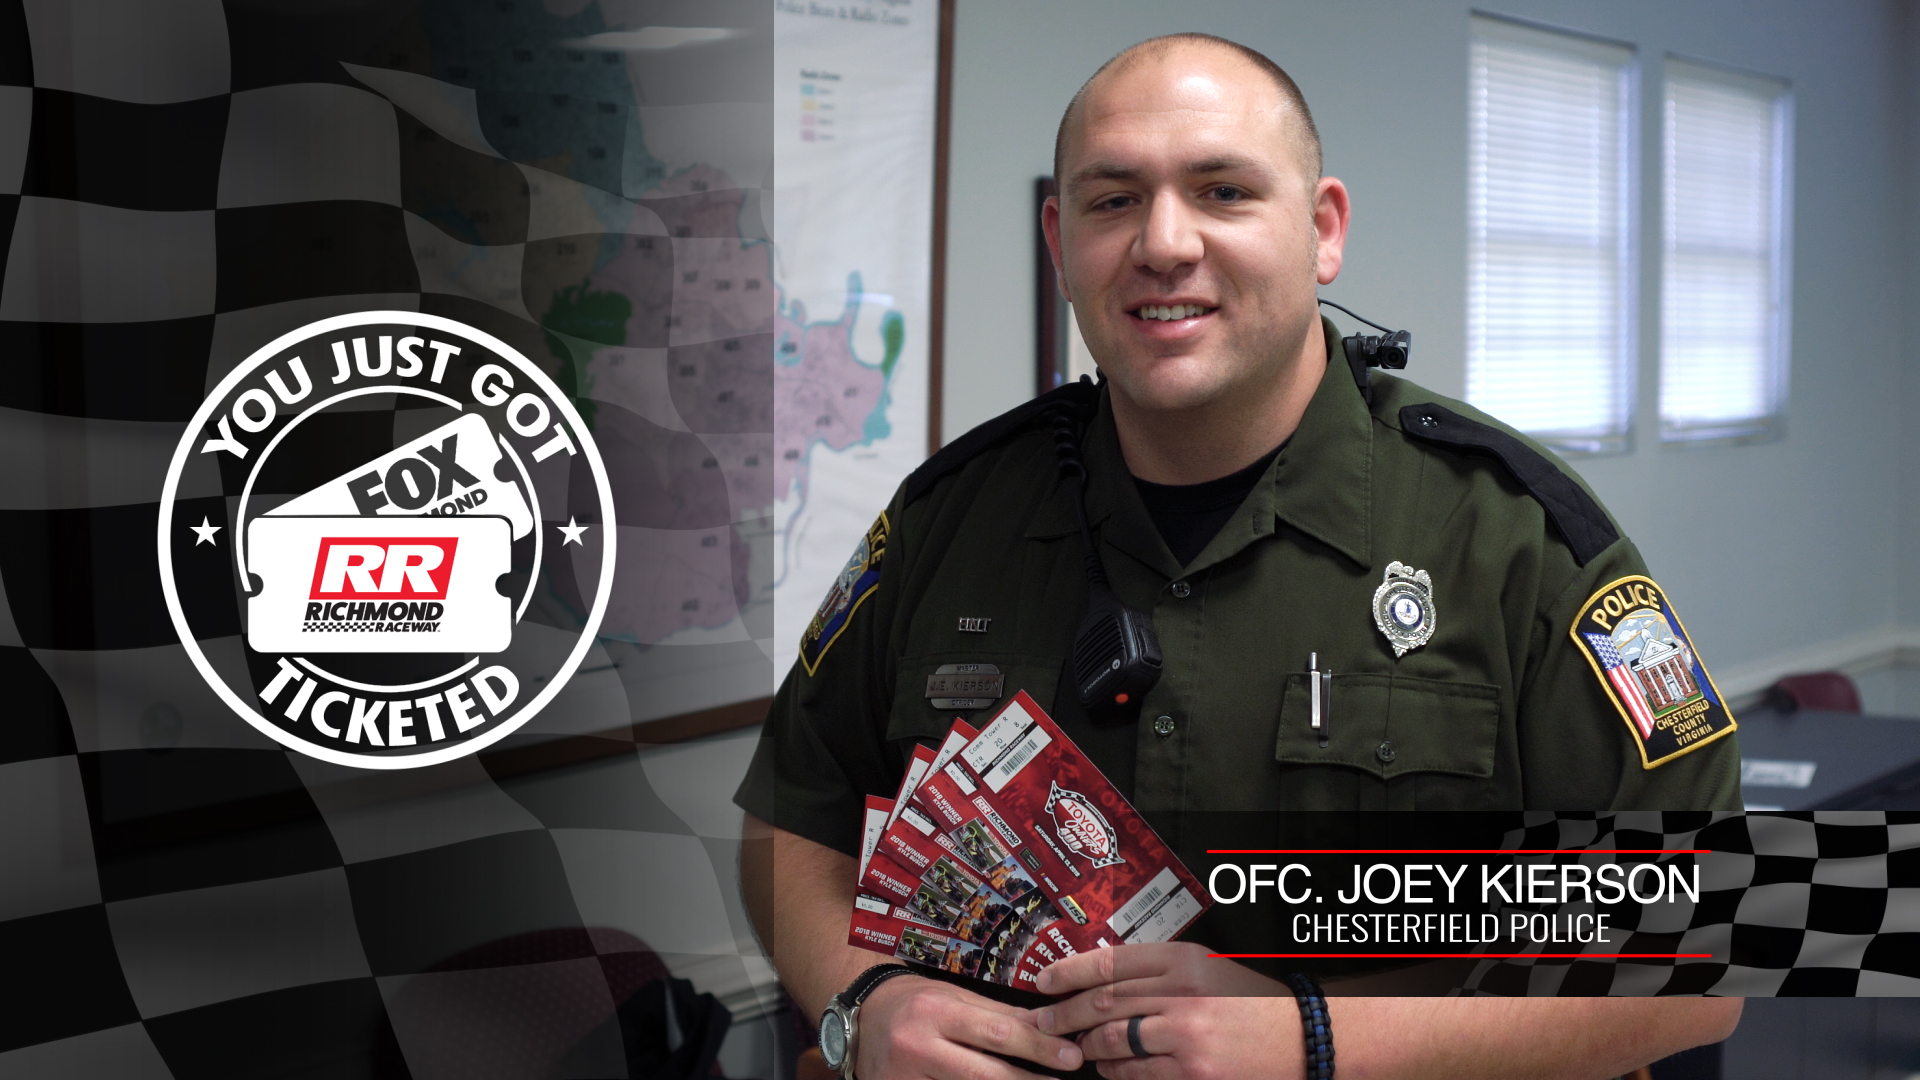 Officer Joey Kierson, Chesterfield Police Dept